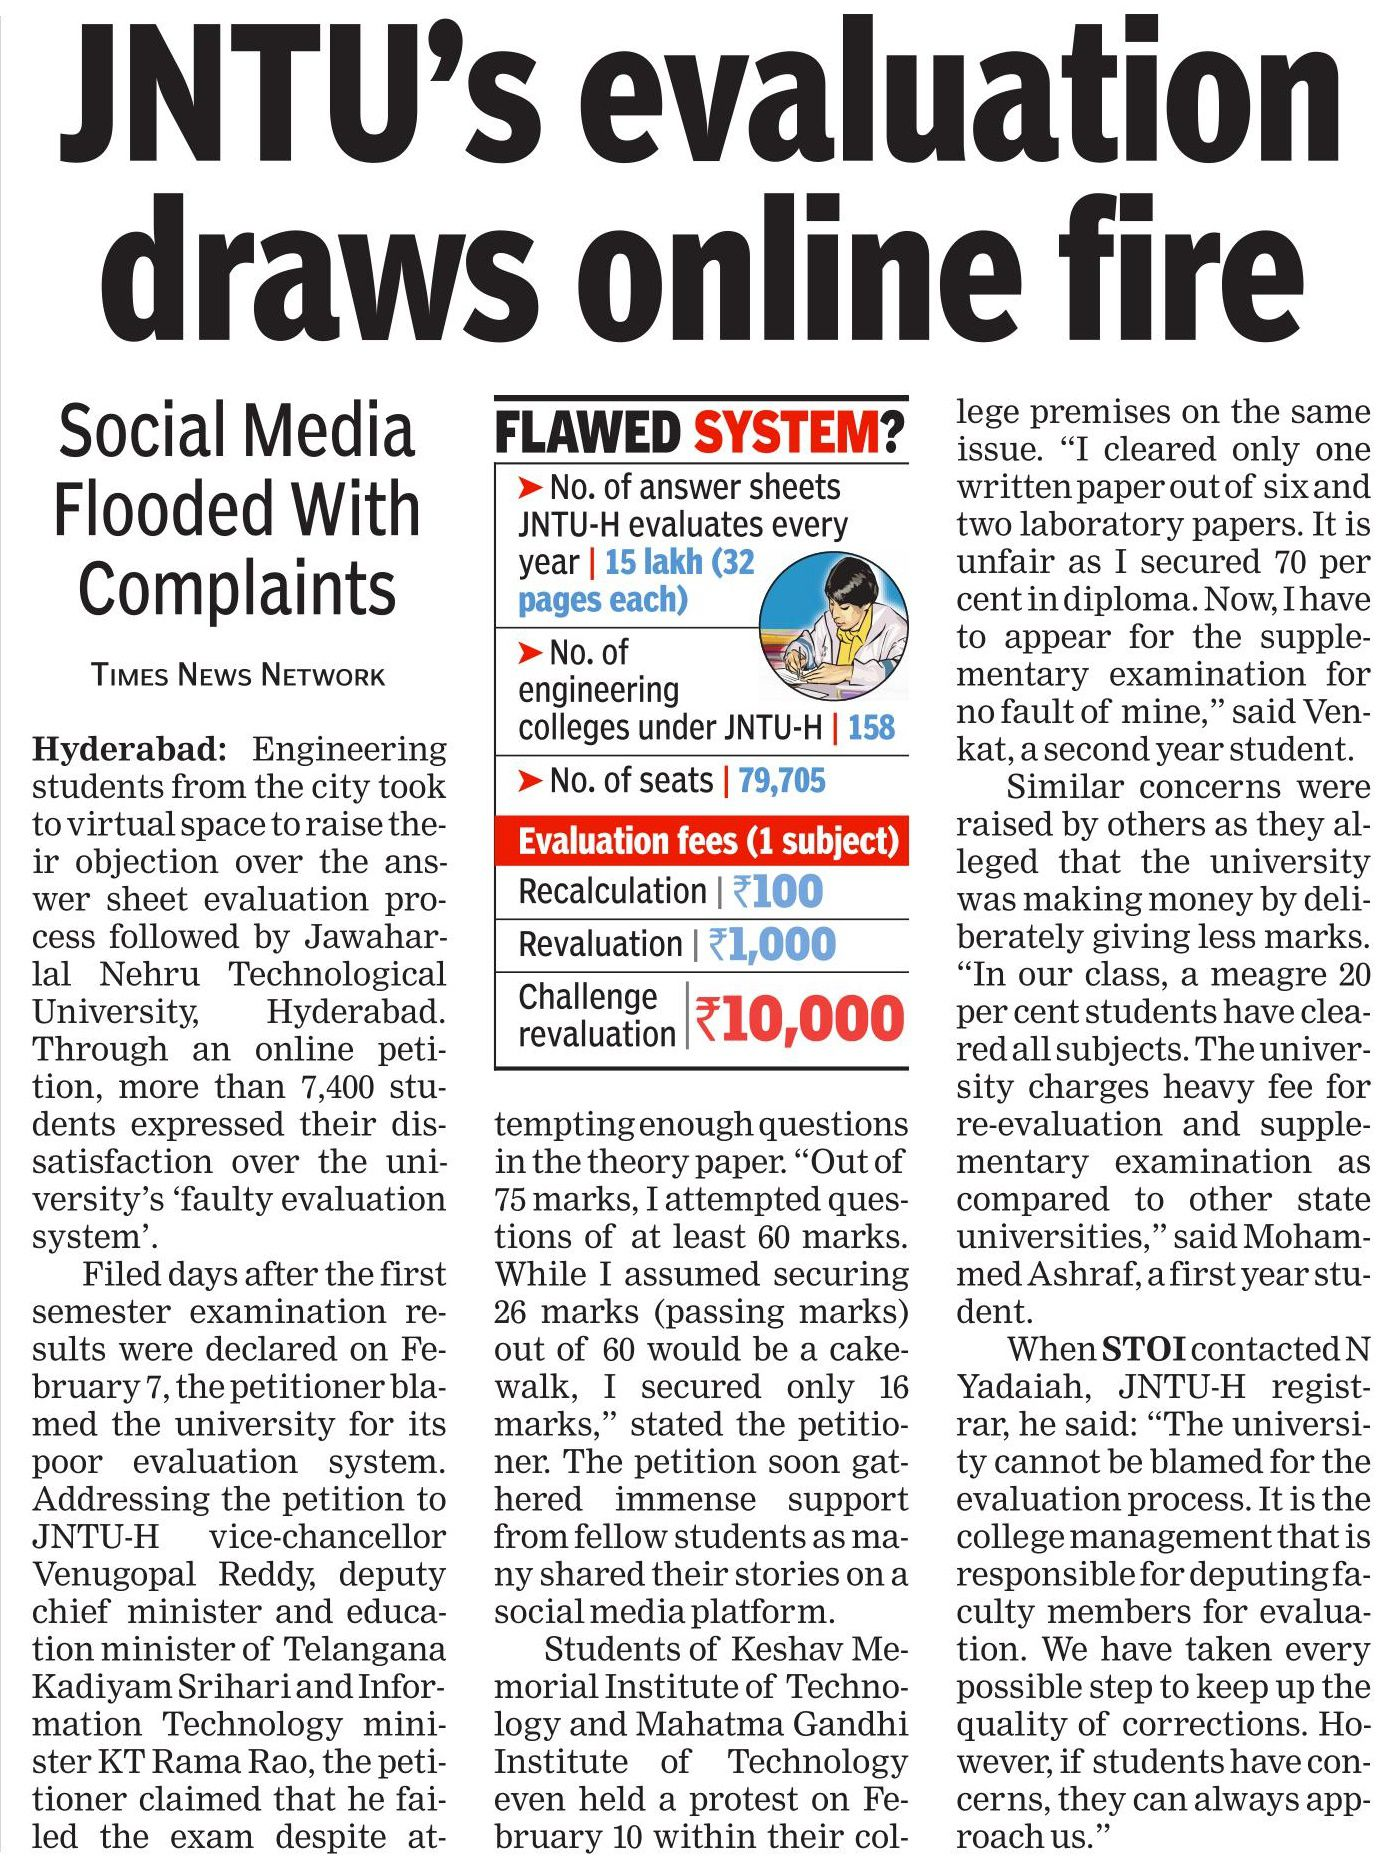 jntu evaluation draws online fire